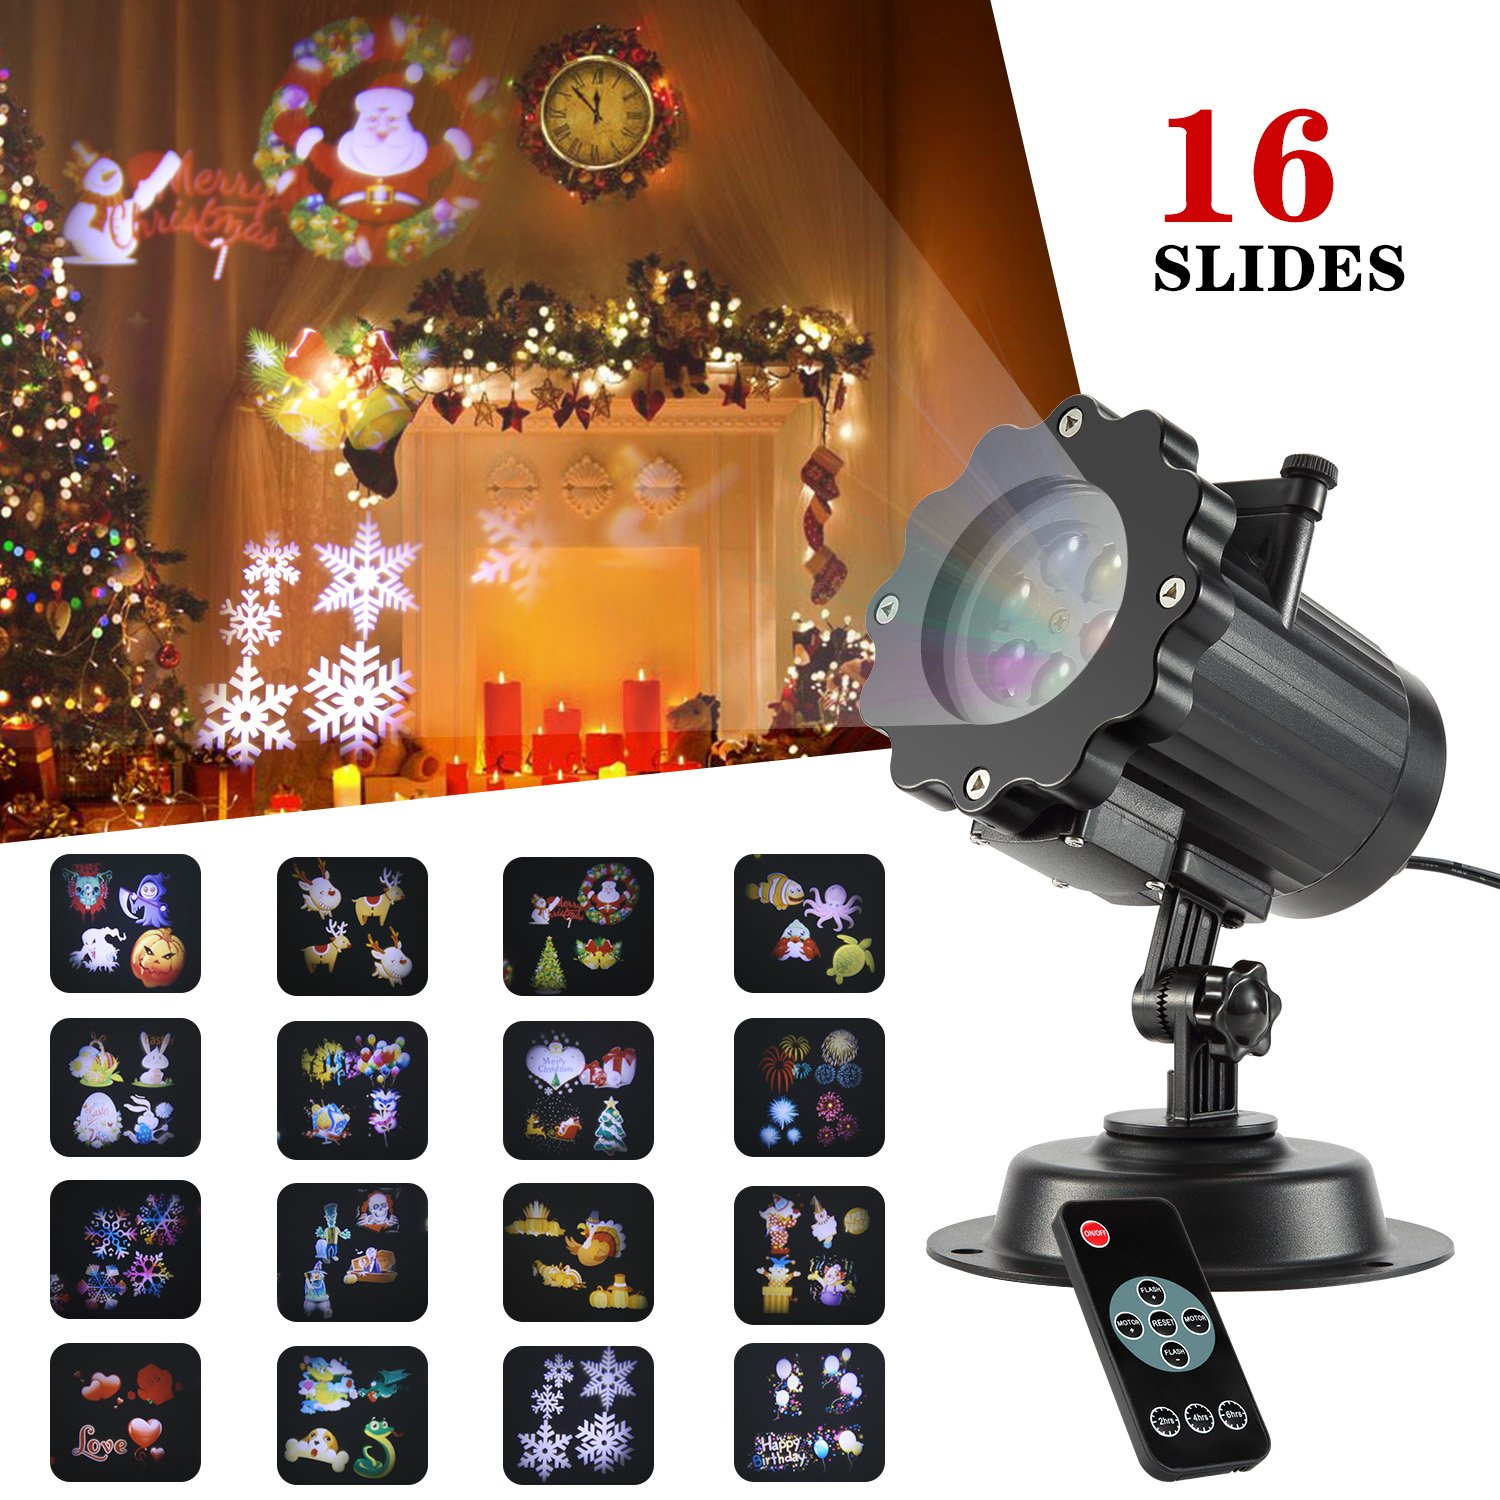 Projection Lights Landscape, SENDOW Projector Lights LED with 16 Switchable Patterns Waterproof Rotating Motion Spotlights Decorative for Birthday Wedding Party Holiday Home Outdoor Stage